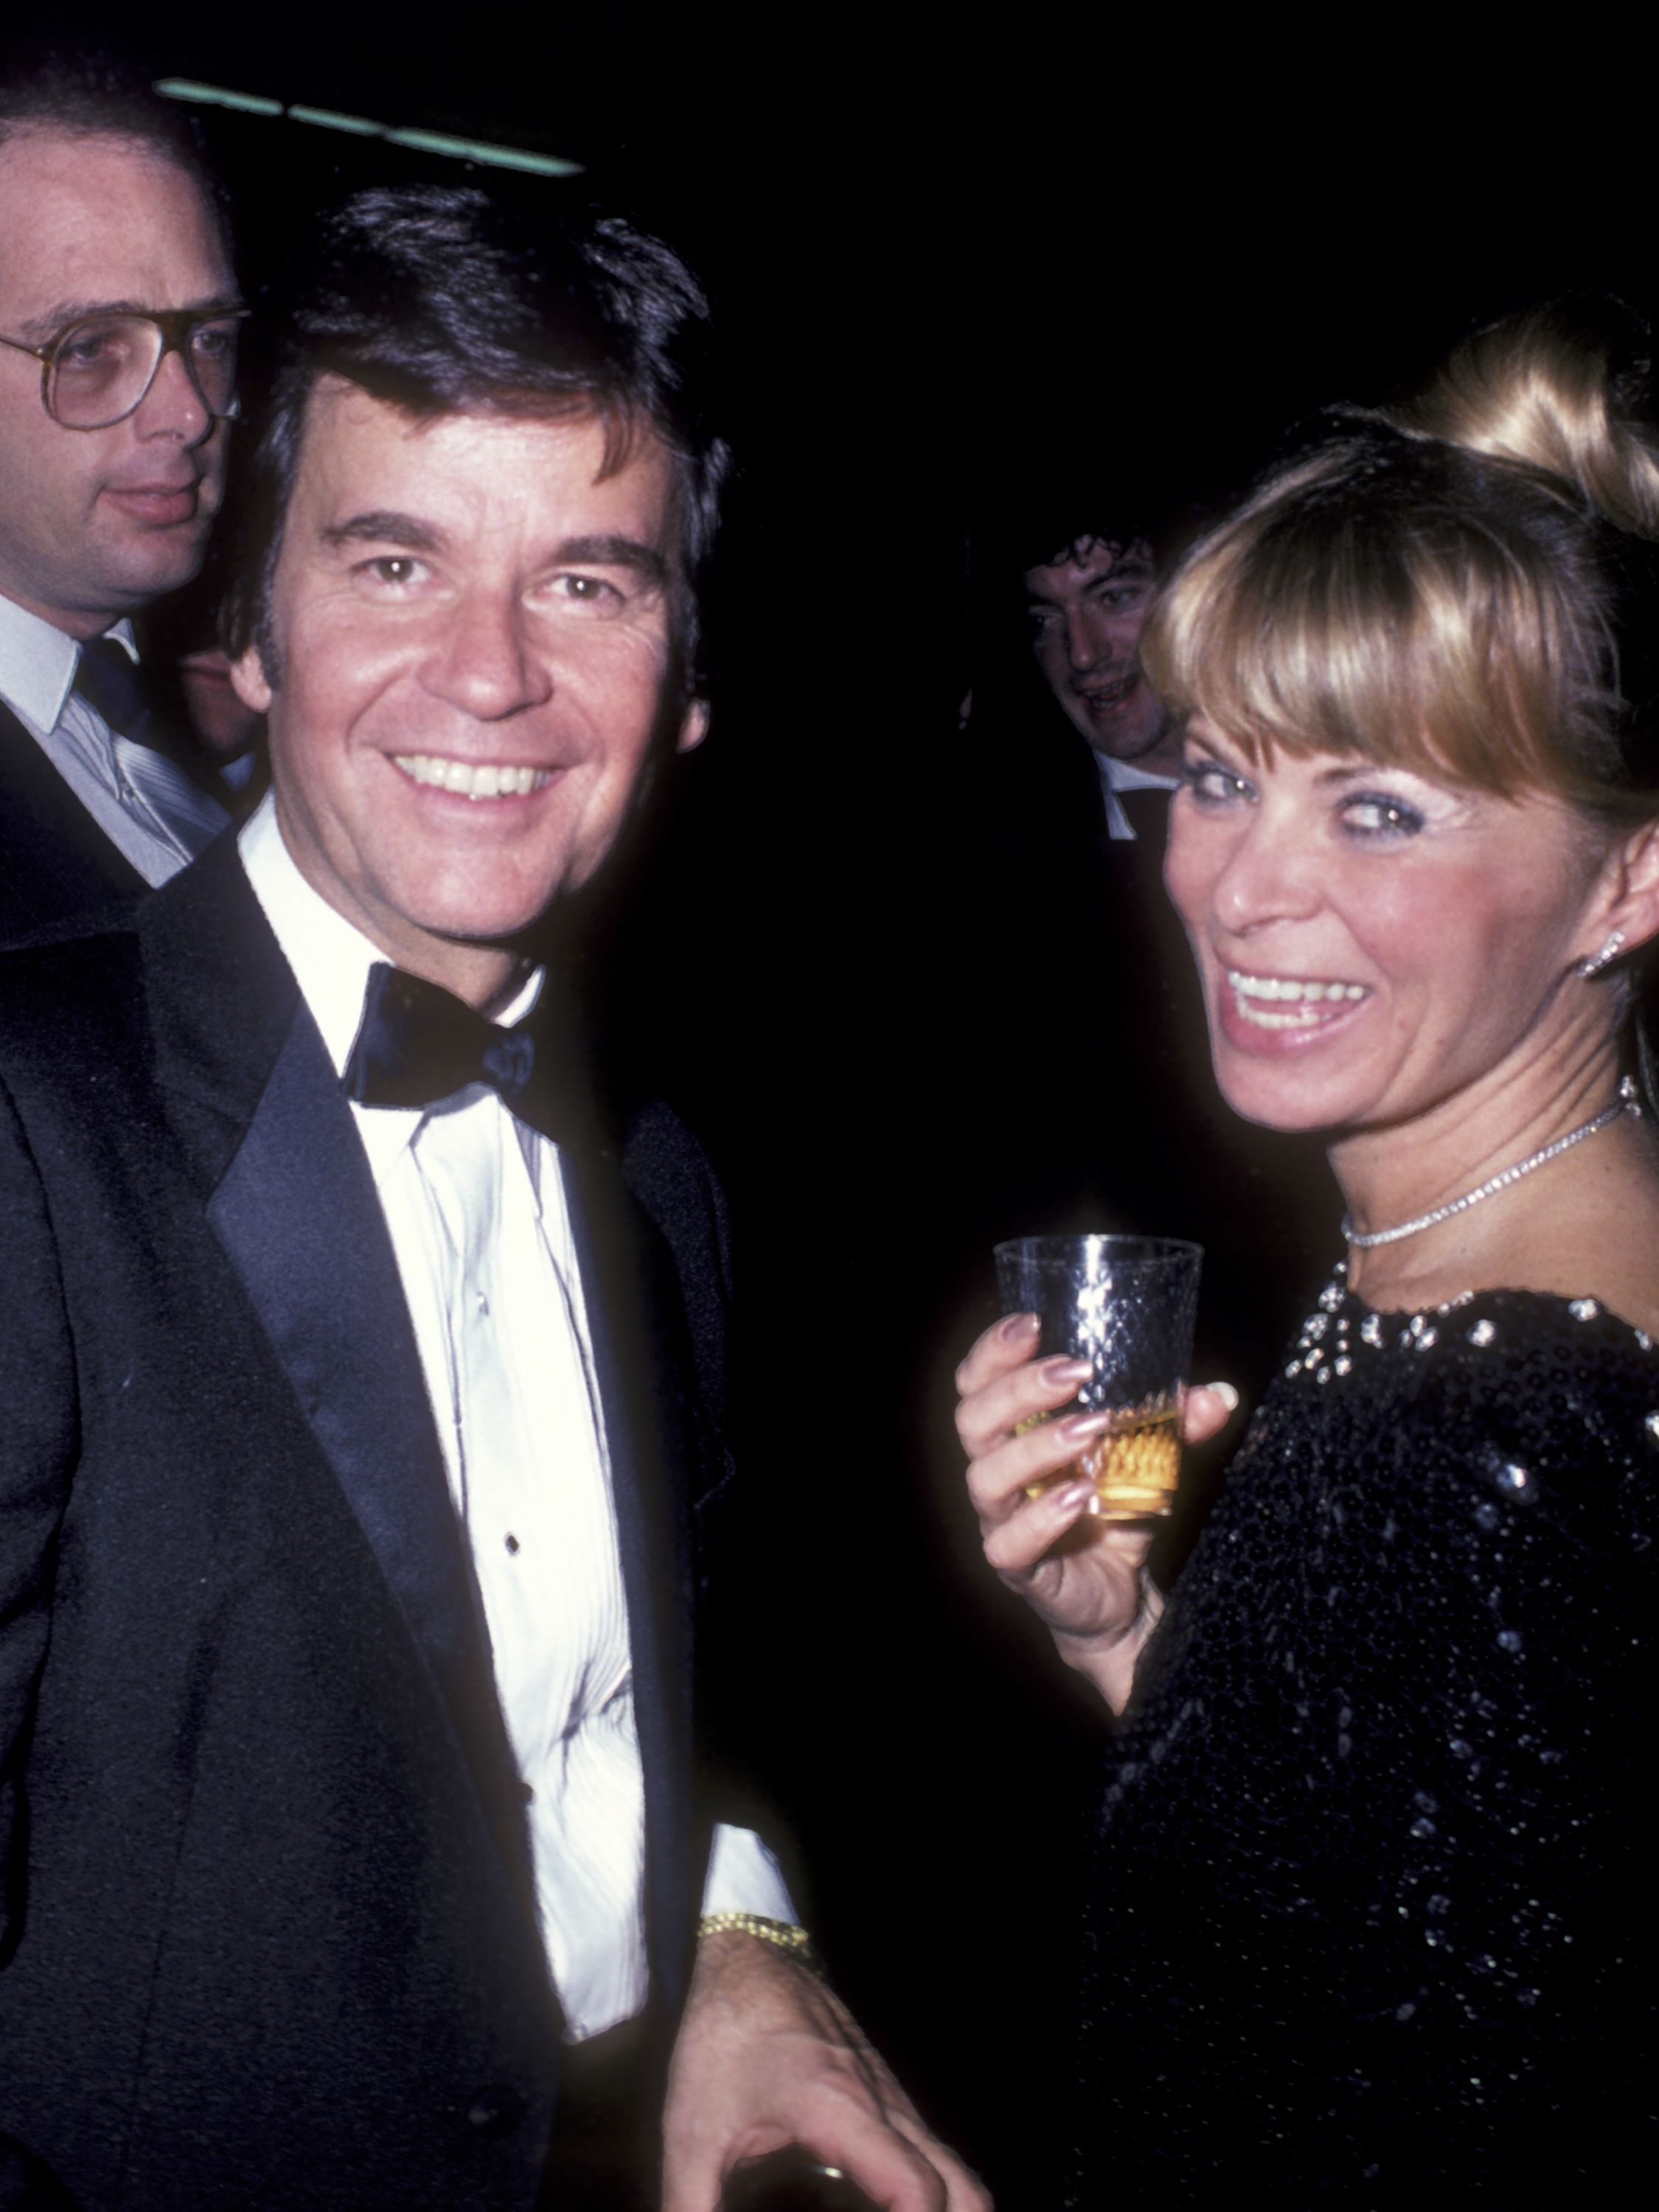 Clark and wife Karen attend  the 16th Annual Academy of Country Music Awards on April 30, 1981, at the Shrine Auditorium in Los Angeles.